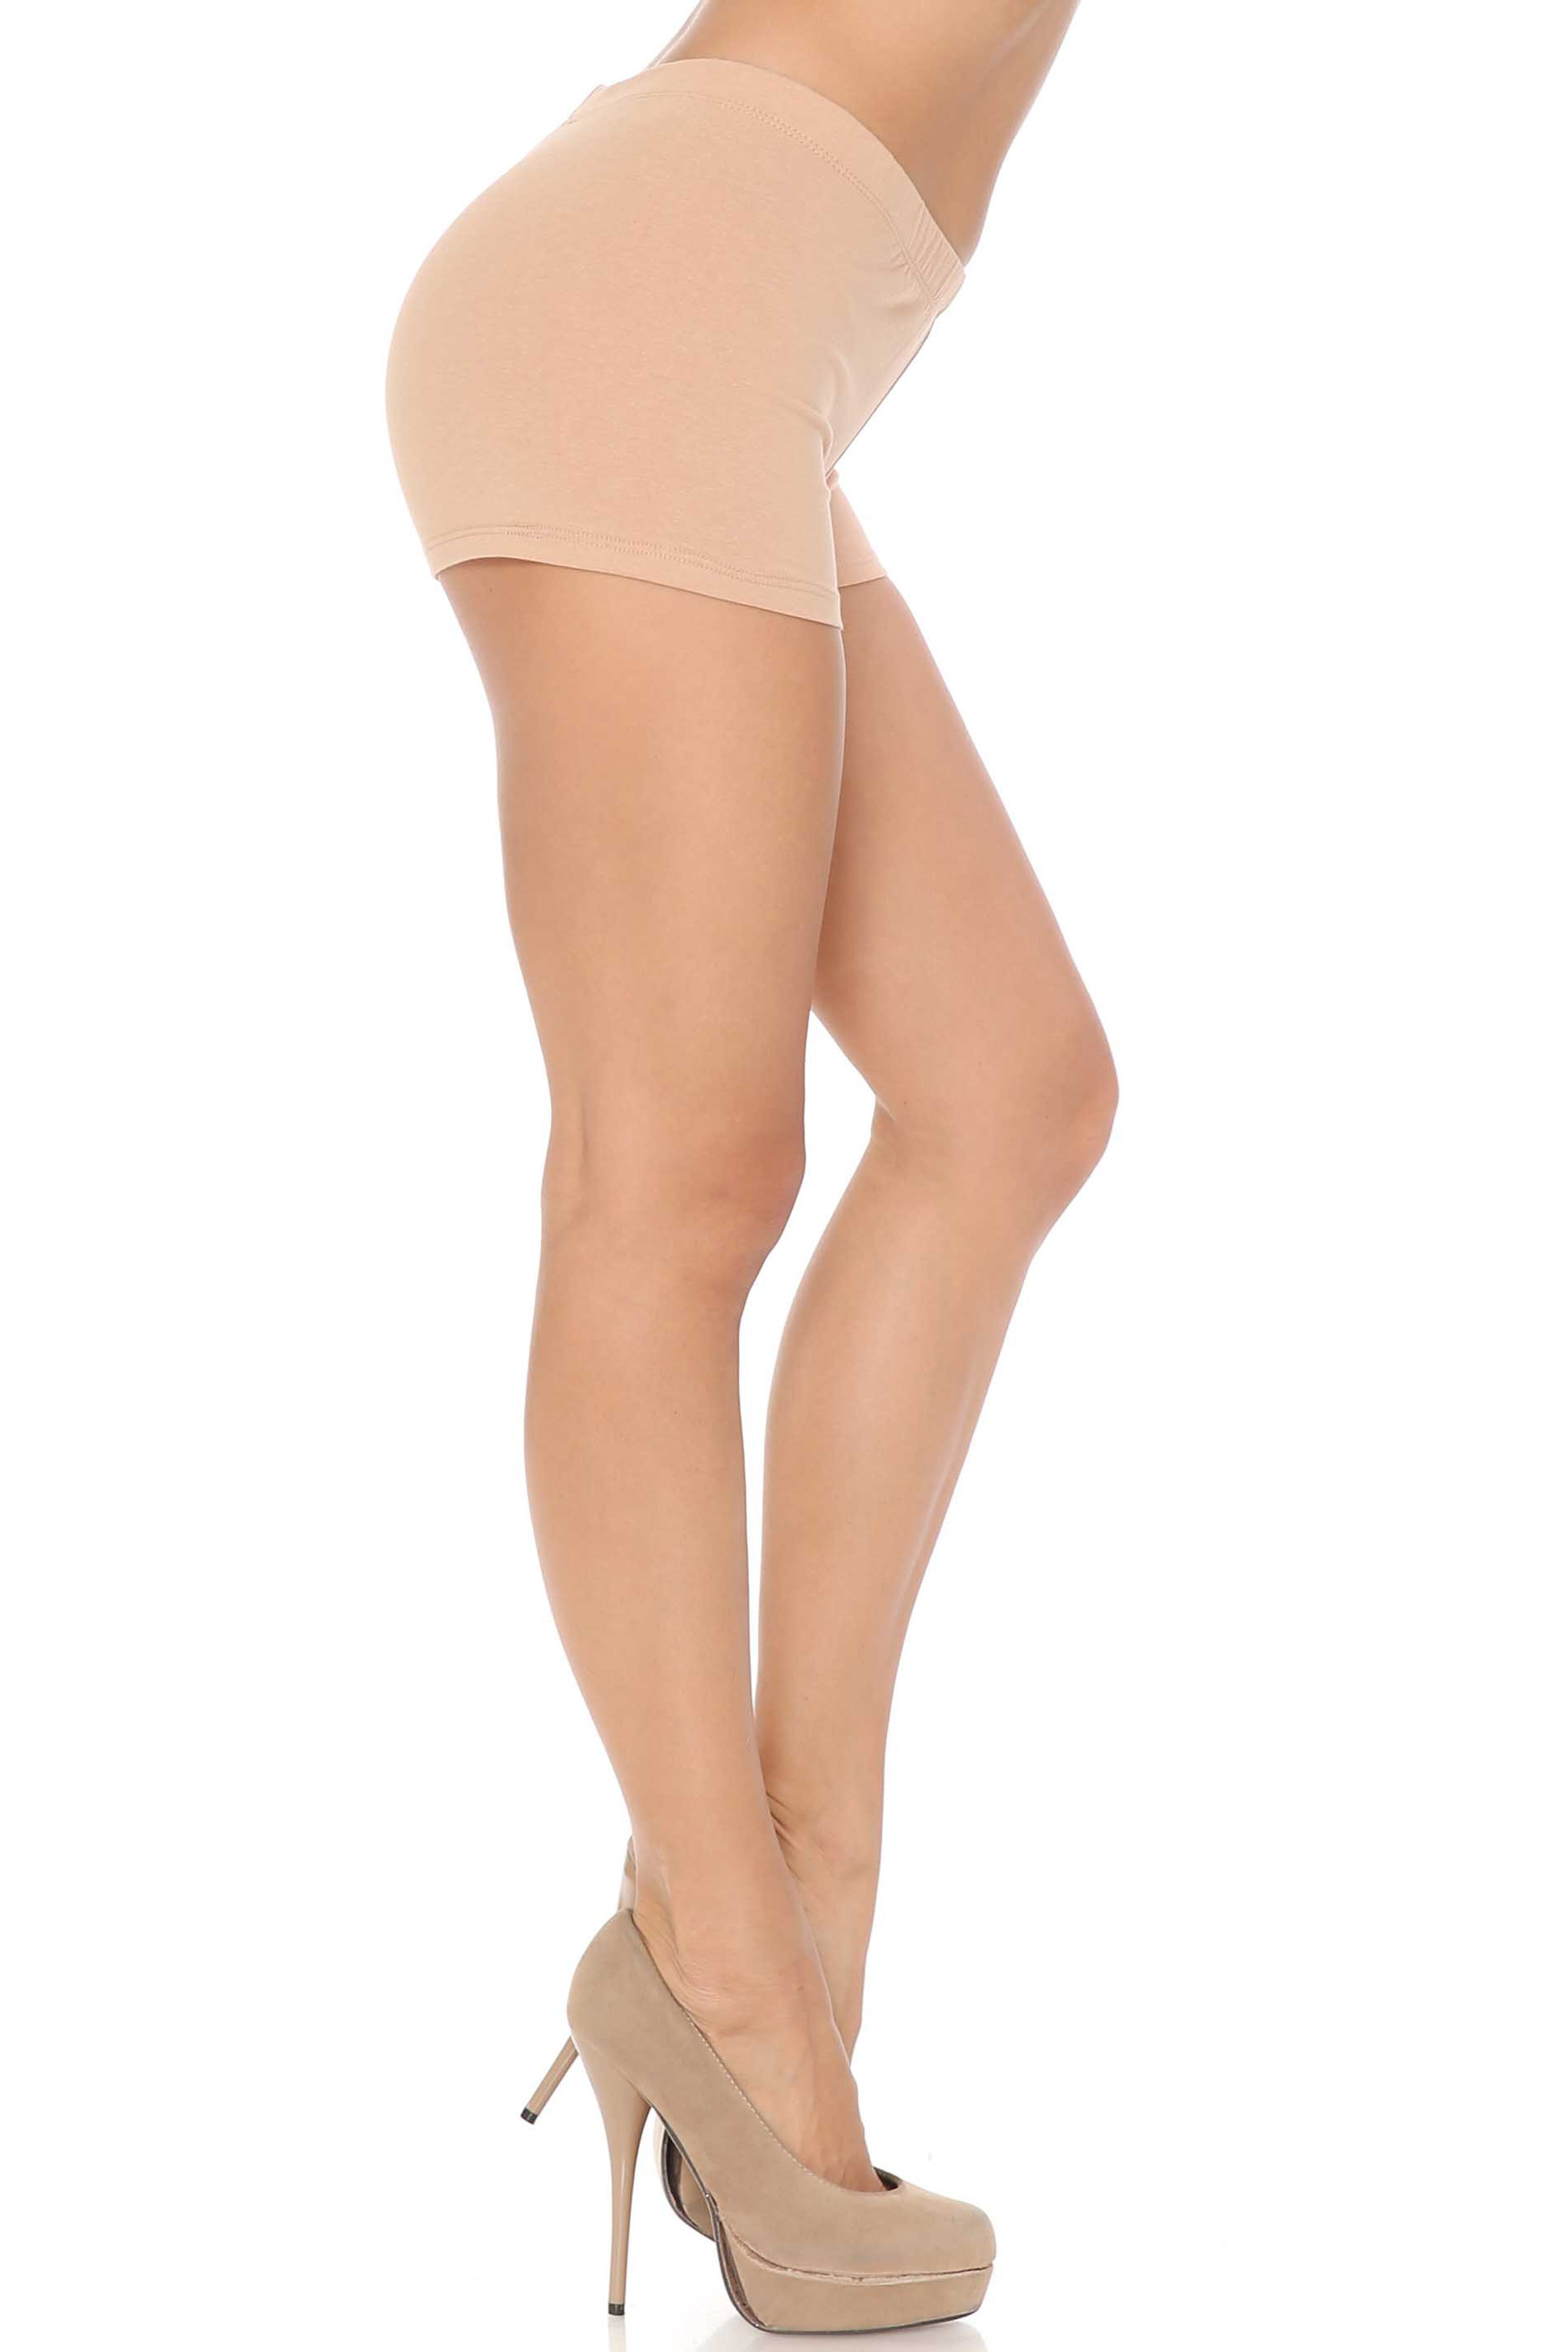 Right side of Beige USA Cotton Boy Shorts